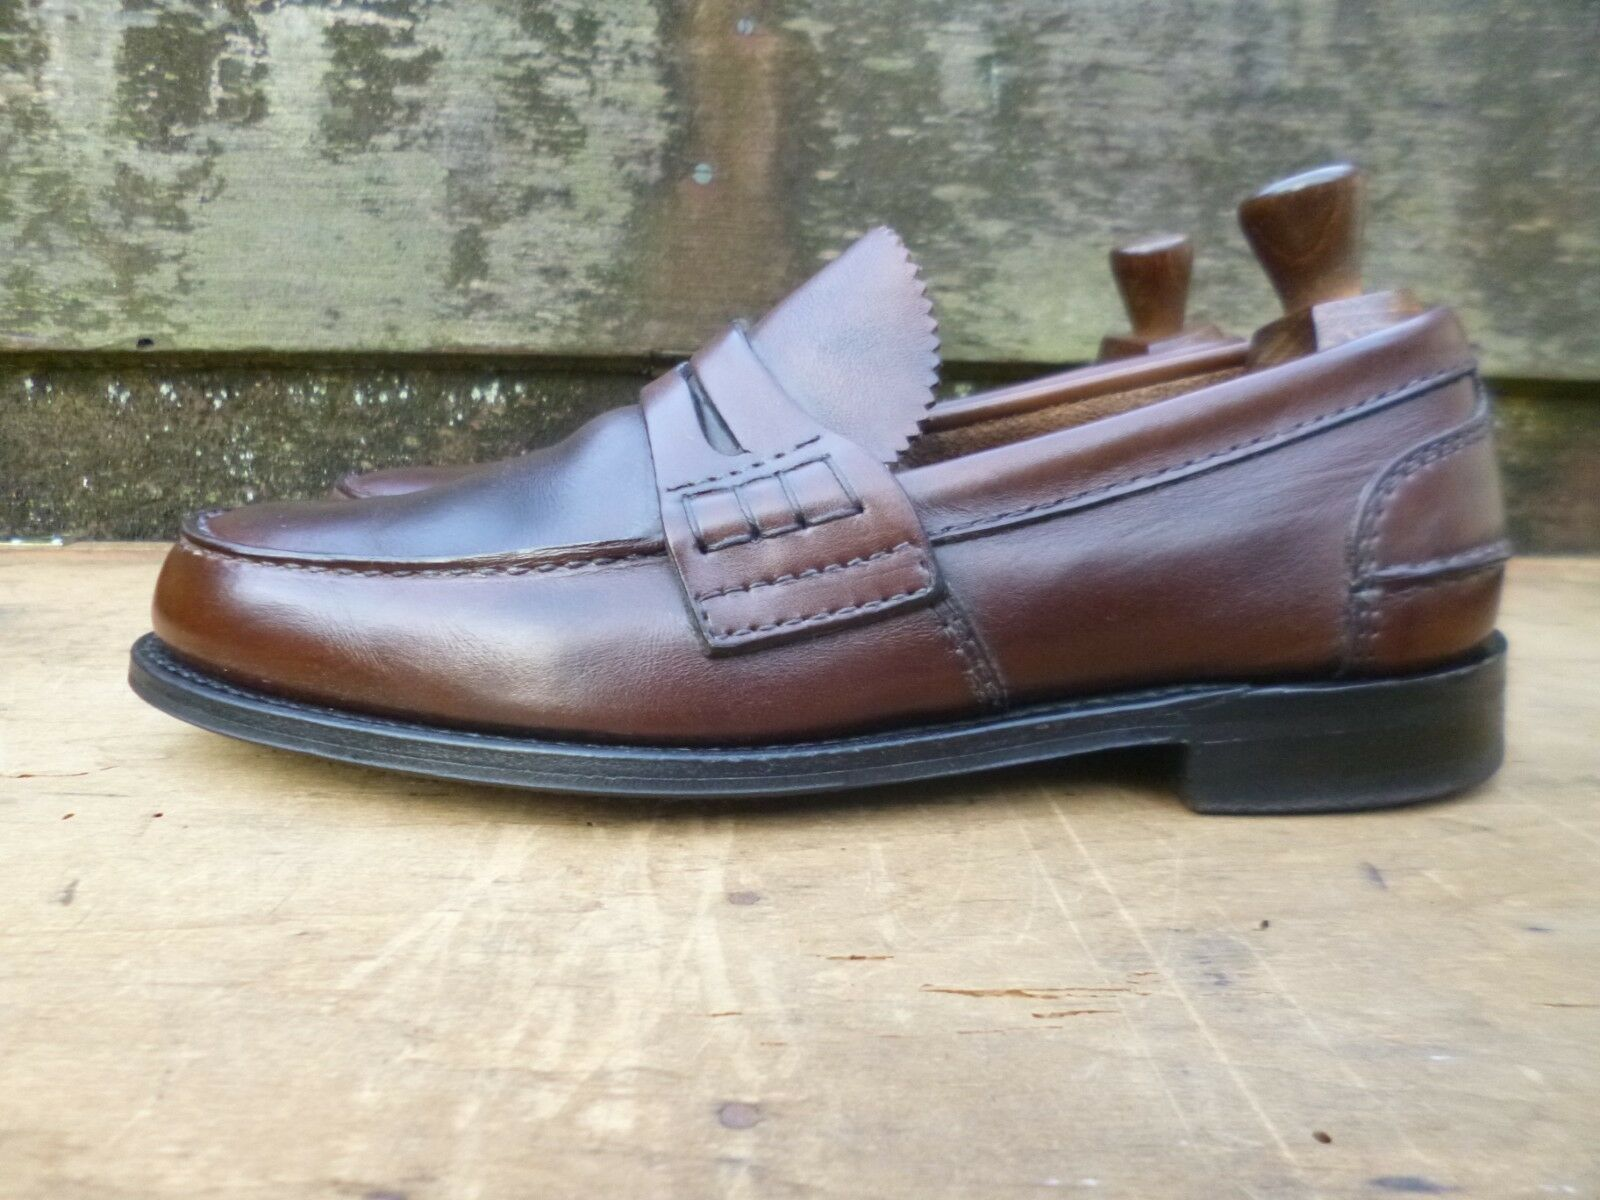 CHURCH LOAFERS 7 – BROWN NEVADA CALF - UK 7 LOAFERS – EXCELLENT CONDITION 343ad4